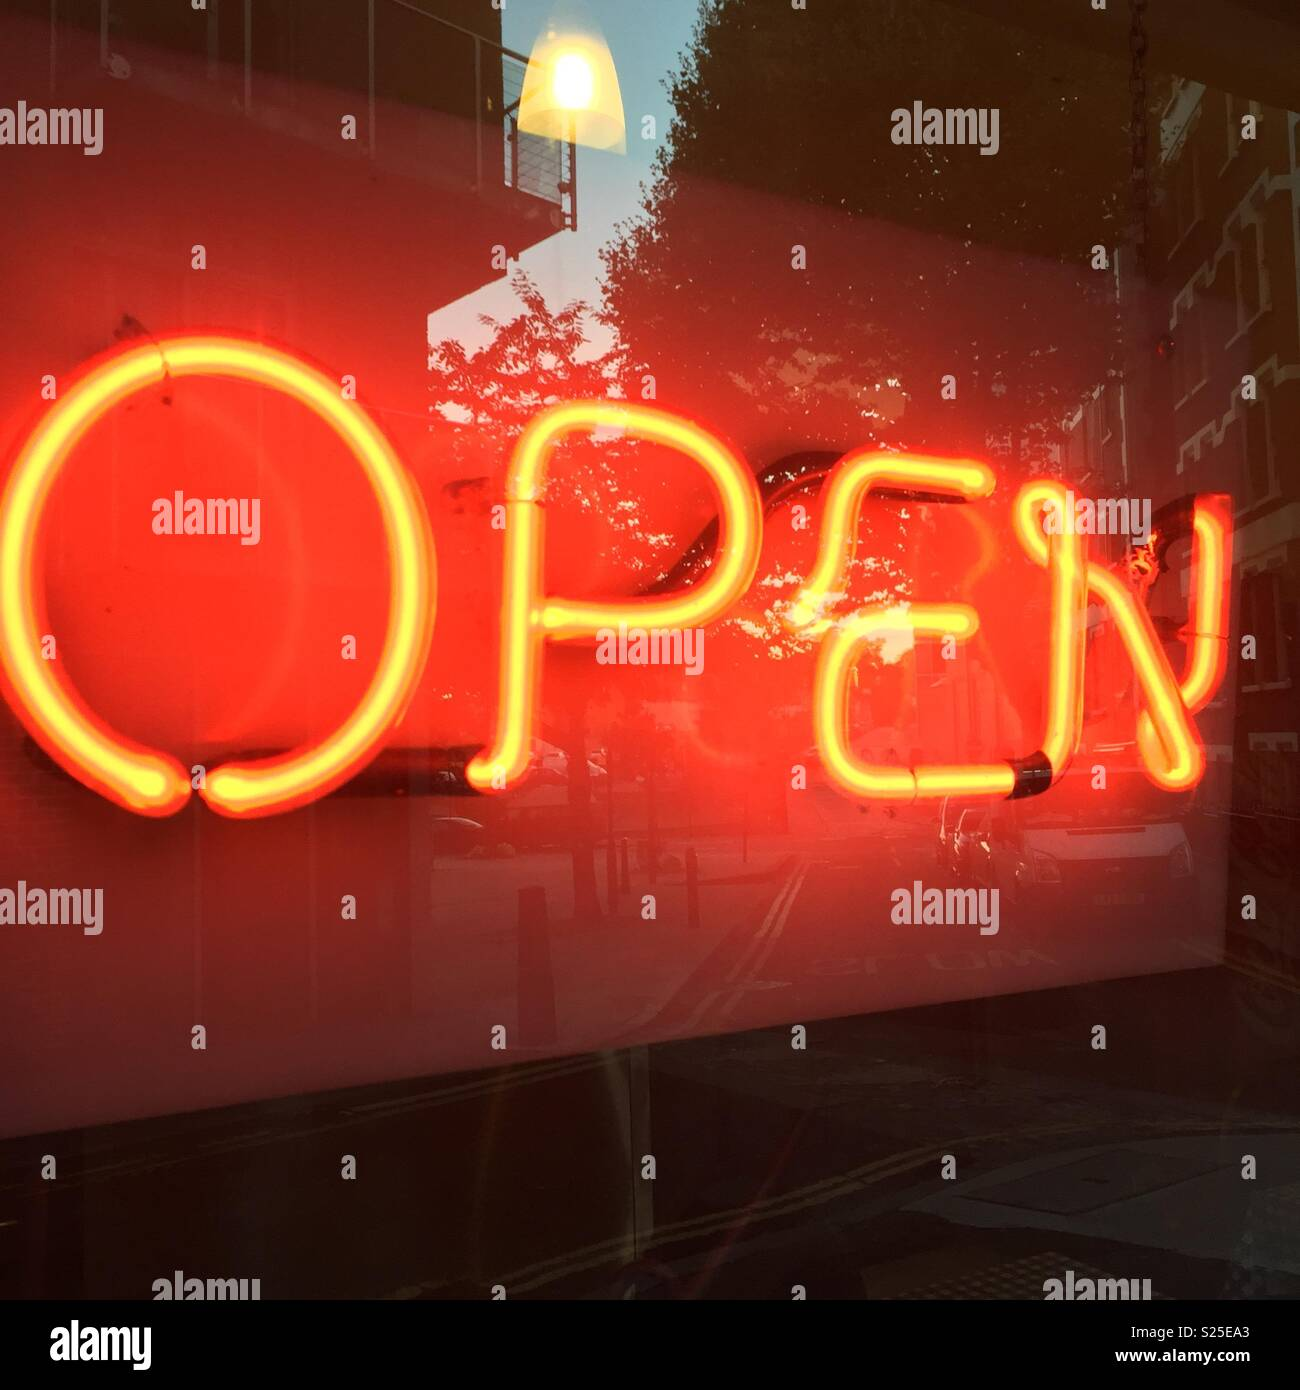 Open for business - Stock Image